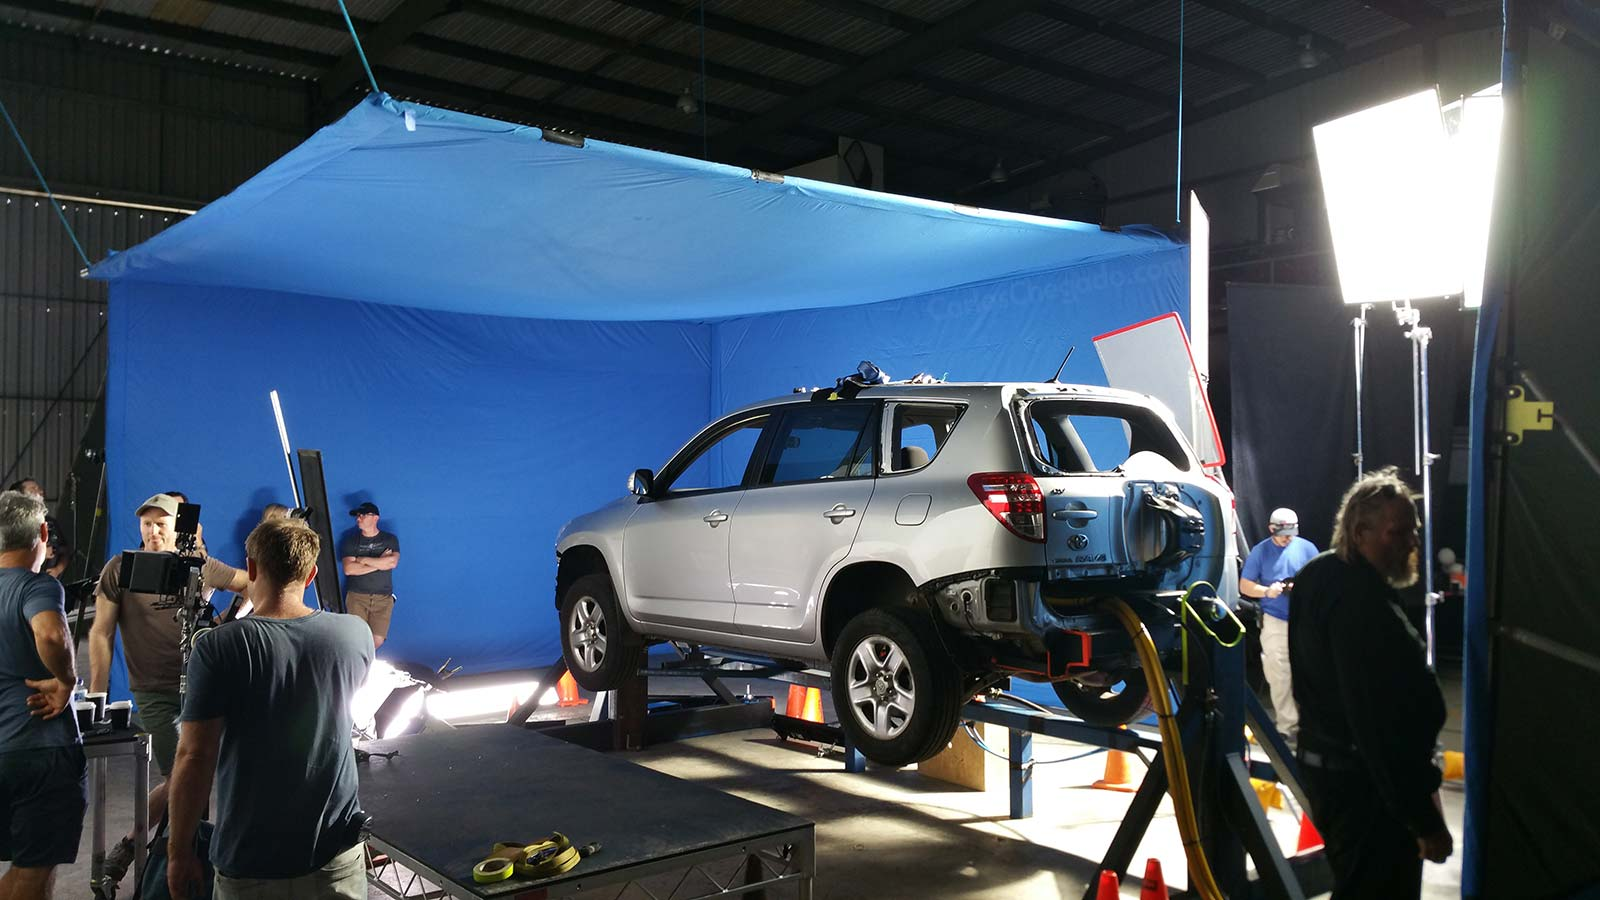 Car Roll over setup at Wongawallan FX Illusions Studio